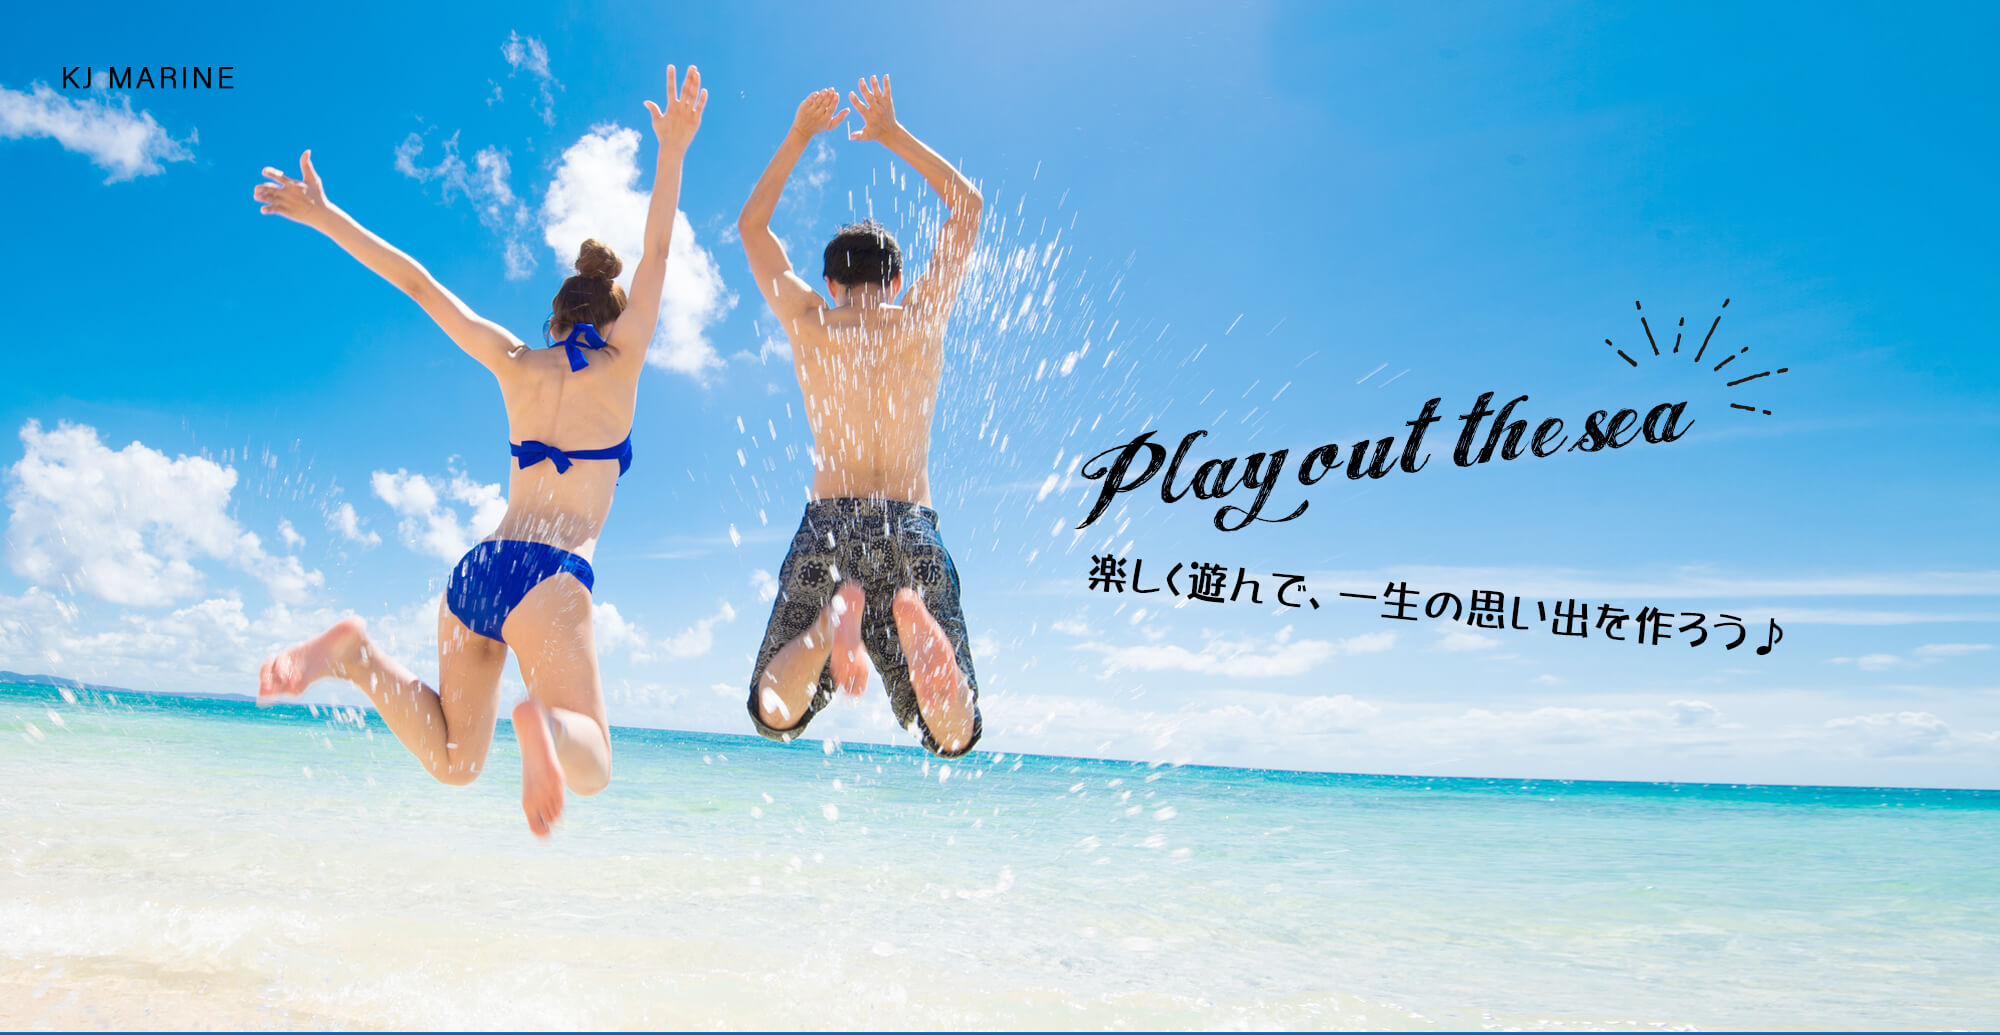 Play out the sea 楽しく遊んで、一生の思い出を作ろう♪